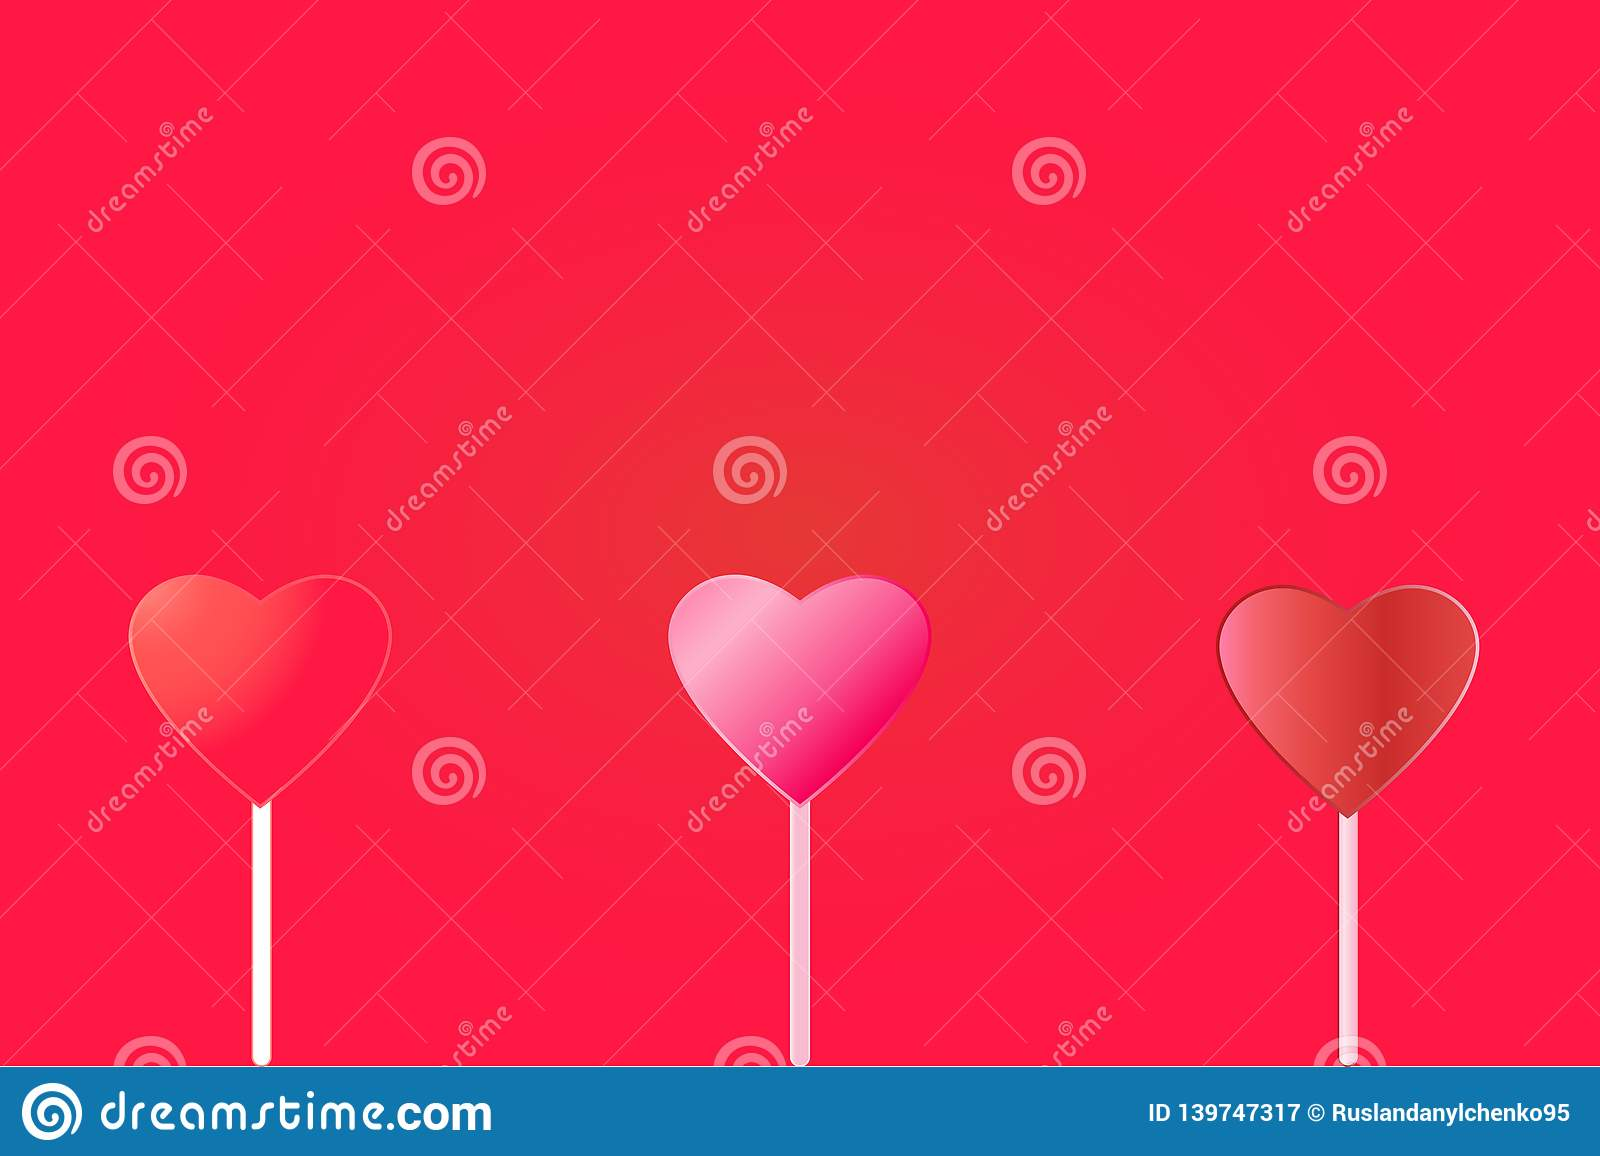 Vector illustration of three hearts on a red background. Valentine`s Day